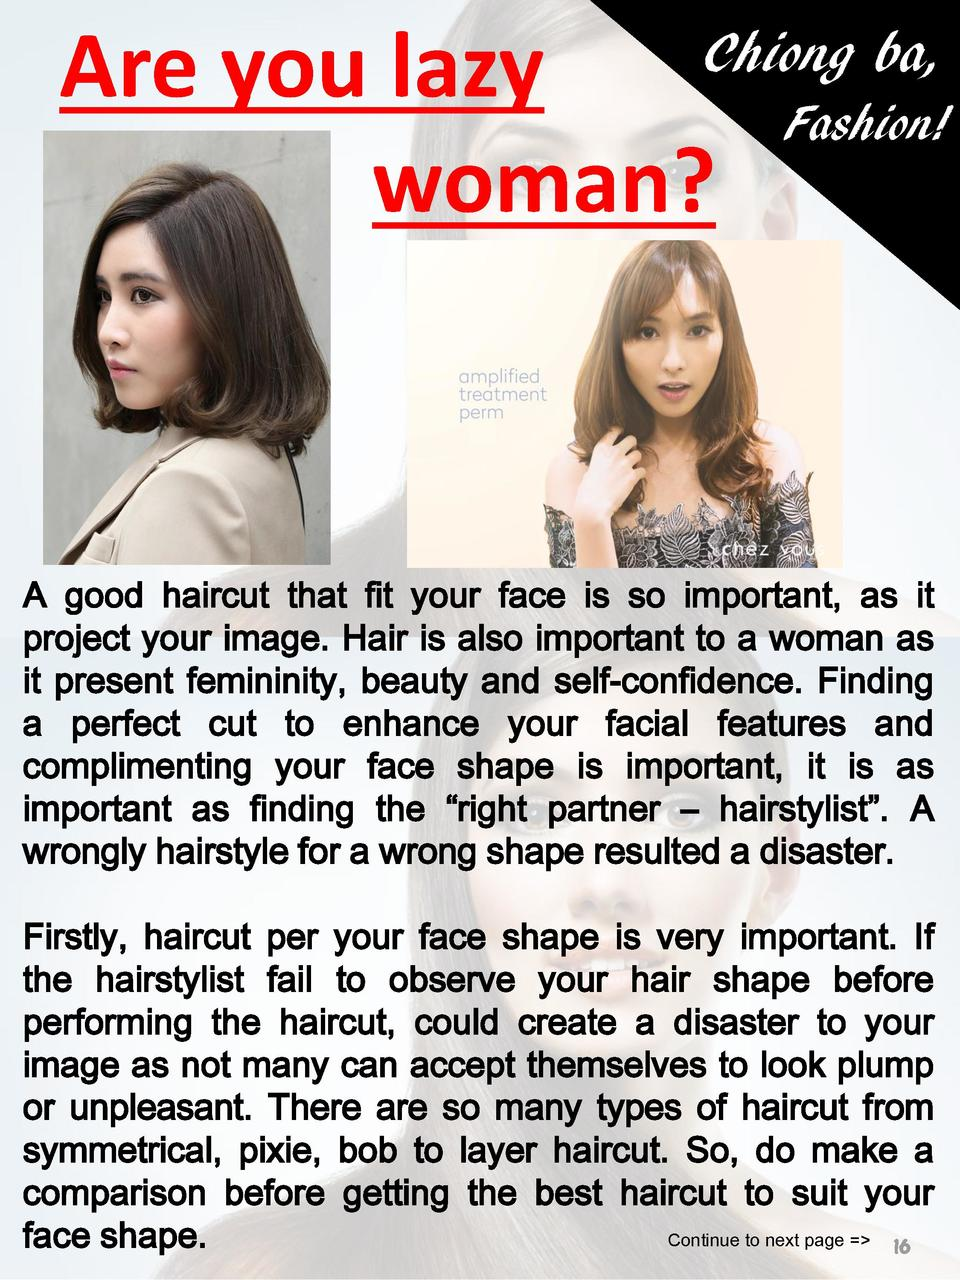 Chiong ba, Are you lazy Fashion  woman   A good haircut that fit your face is so important, as it project your image. Hair...